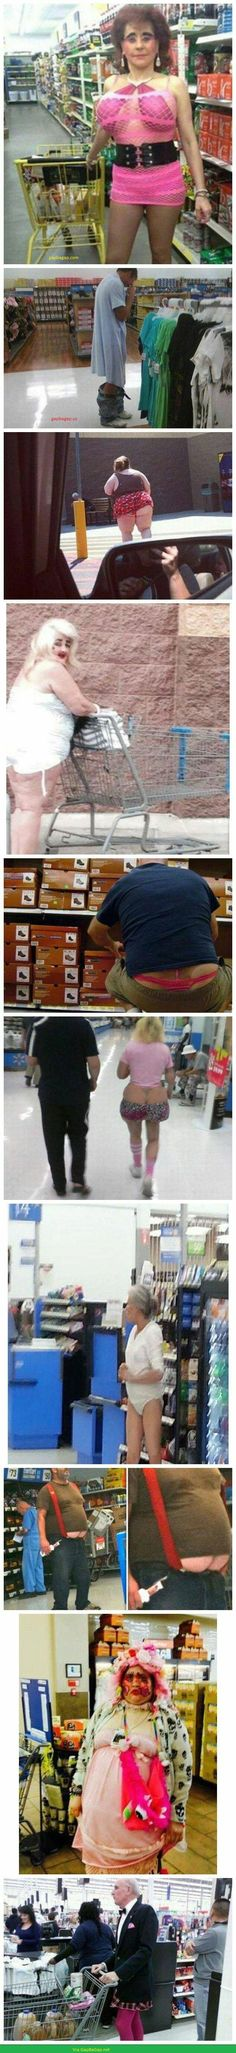 Top 10 Perfectly Timed Funny Photos Of People vs. Walmart Funny, Only At Walmart, People Of Walmart, Walmart Pictures, Funny Pictures, Funniest Pictures, Funny Photos Of People, Funny Memes, Hilarious